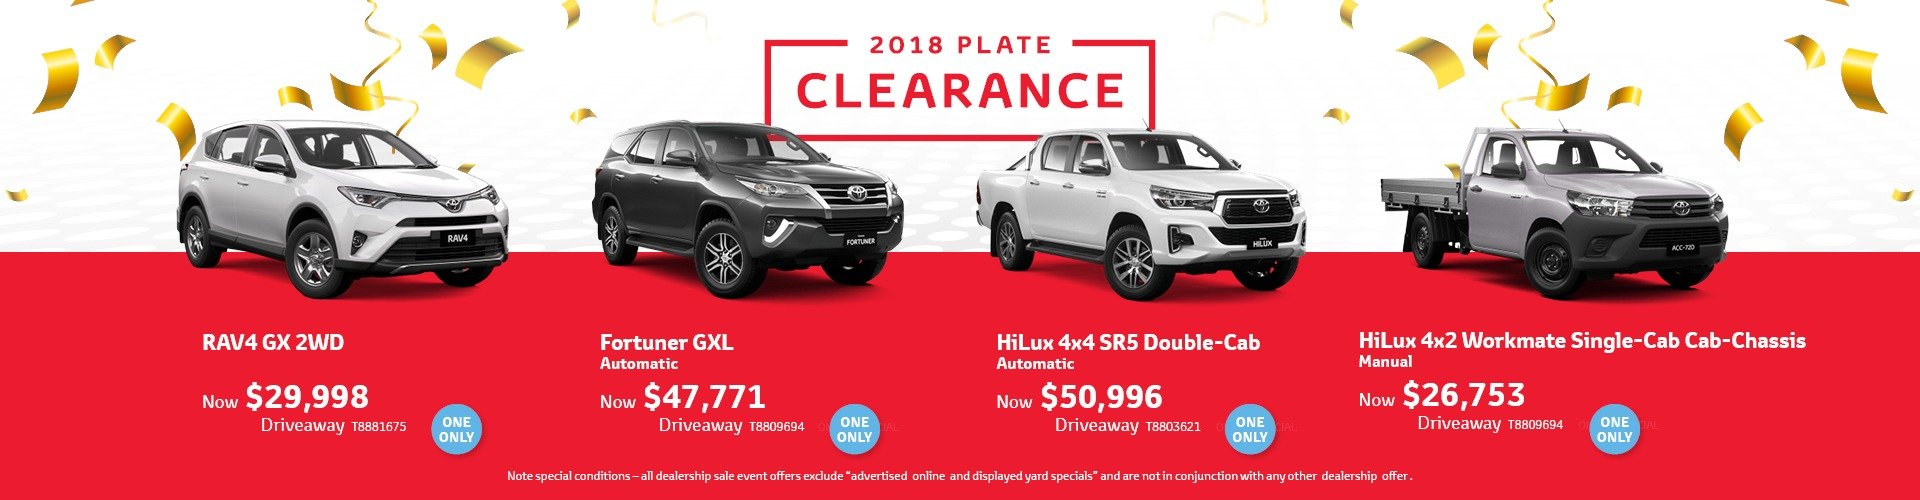 Cardiff Toyota 2018 Plate Clearance